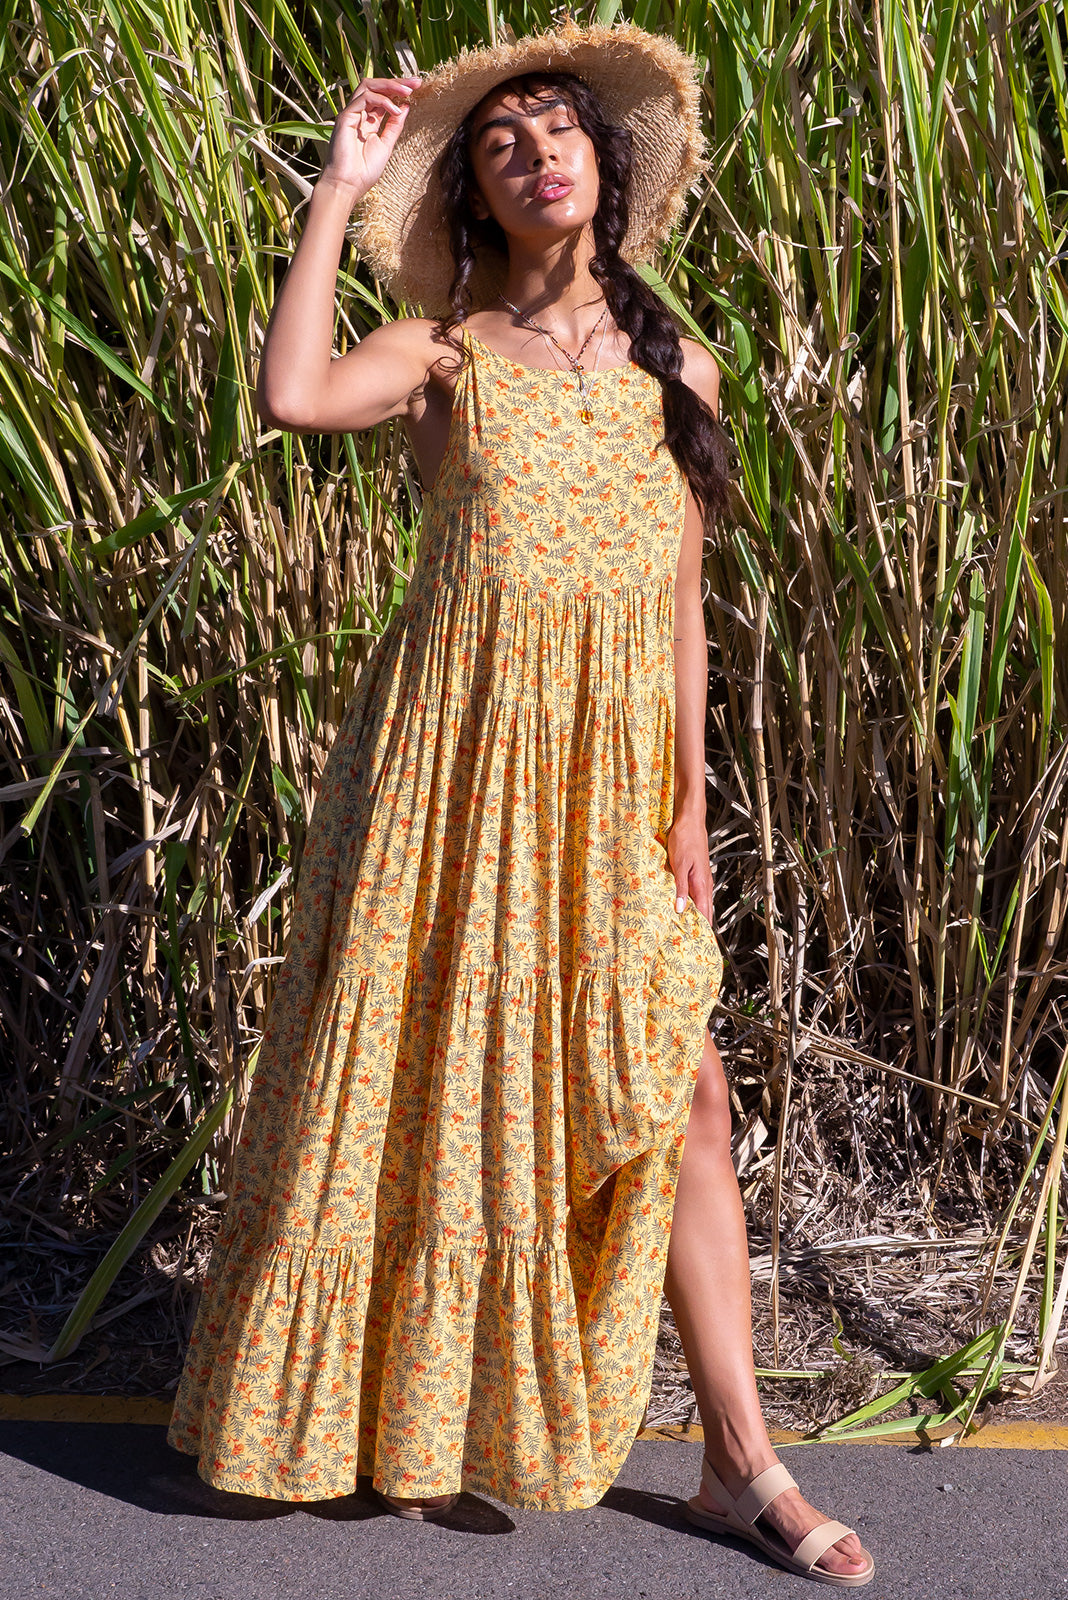 The Lulu Darling Honey Gold Maxi Dress features high neck with thin straps, full tiered skirt, deep side pockets and 70% Cotton, 30% Rayon in yellow base with orange and khaki print.